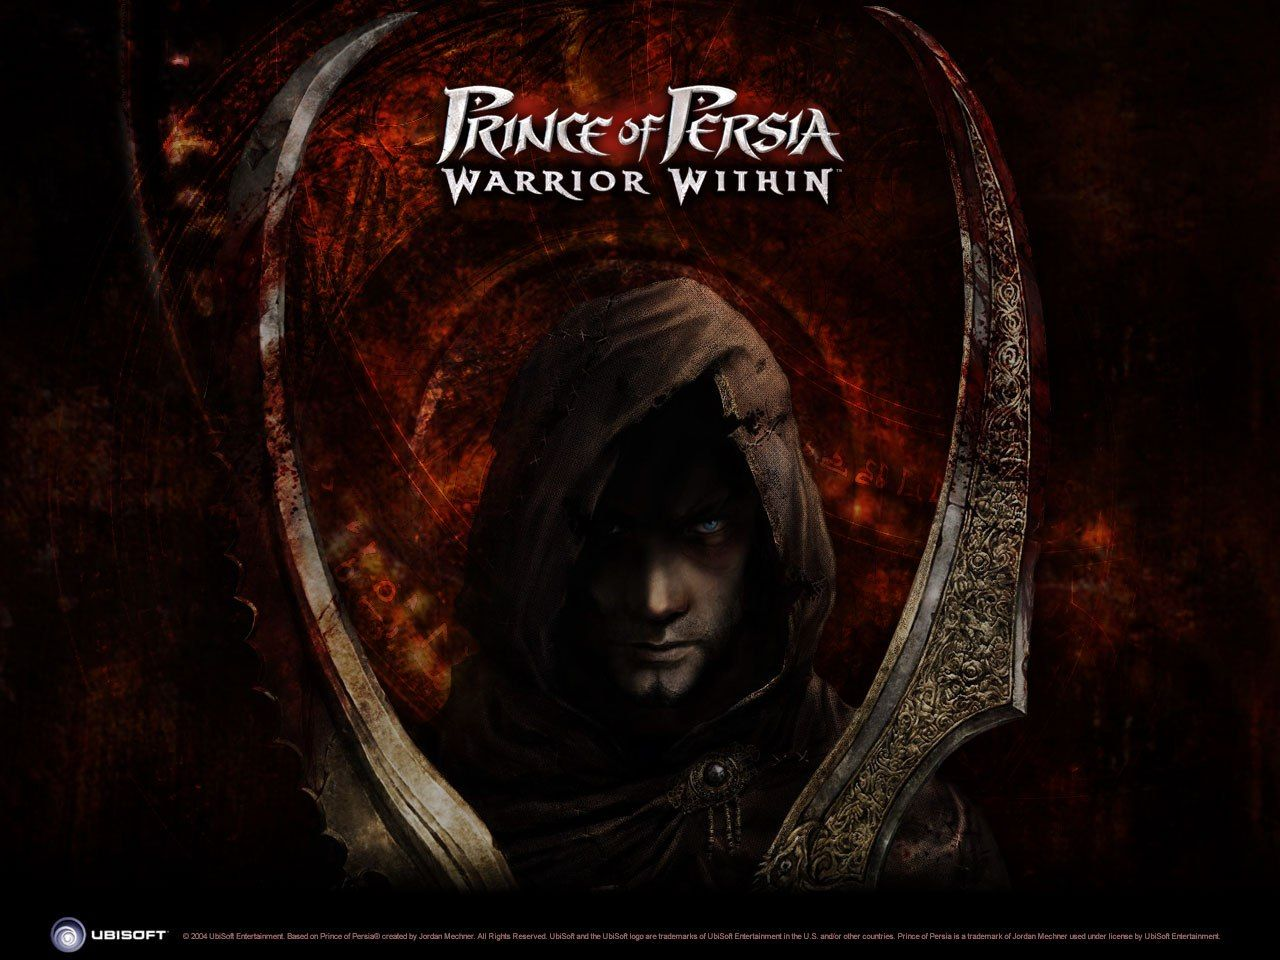 Prince of Persia Warrior Within (With images) Prince of